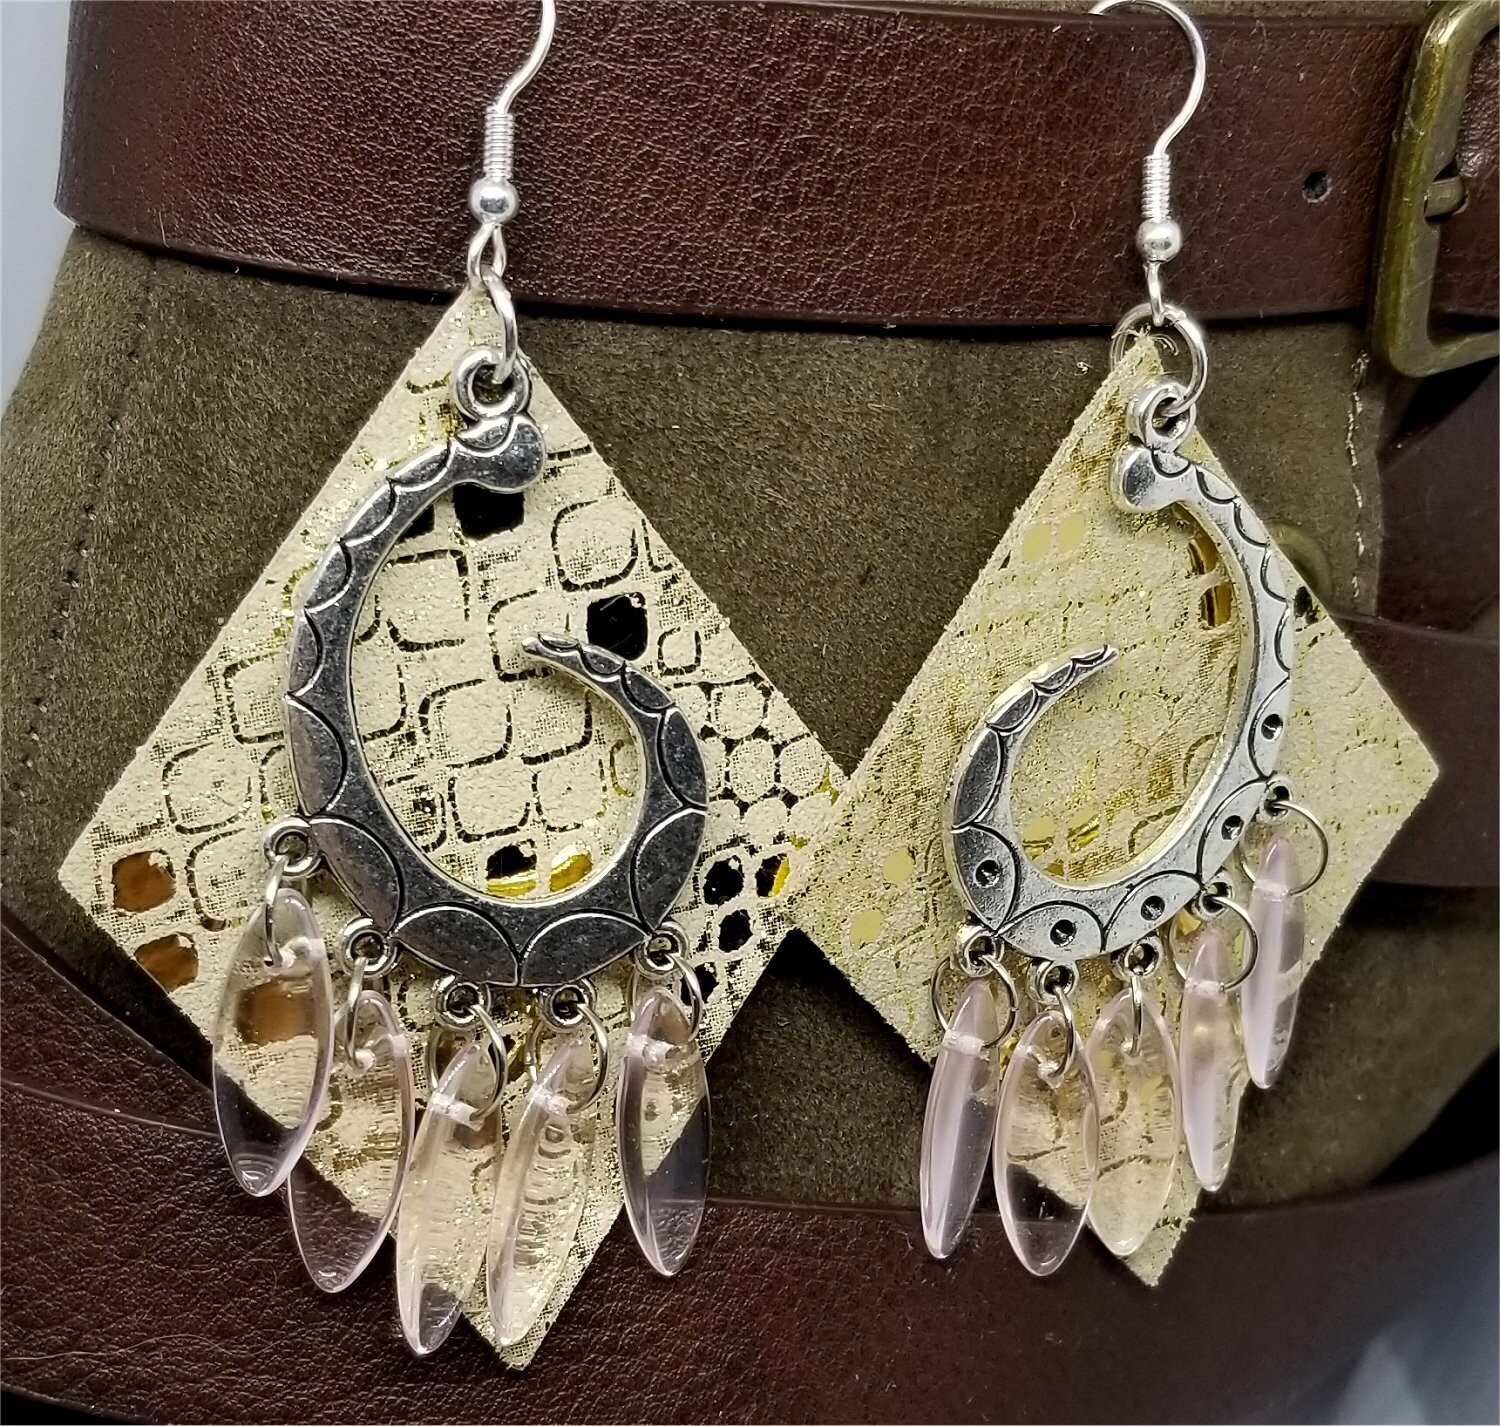 Shiny Metallic Gold Diamond Shaped Real Leather Earrings with Silver Chandelier with Glass Bead Dangles